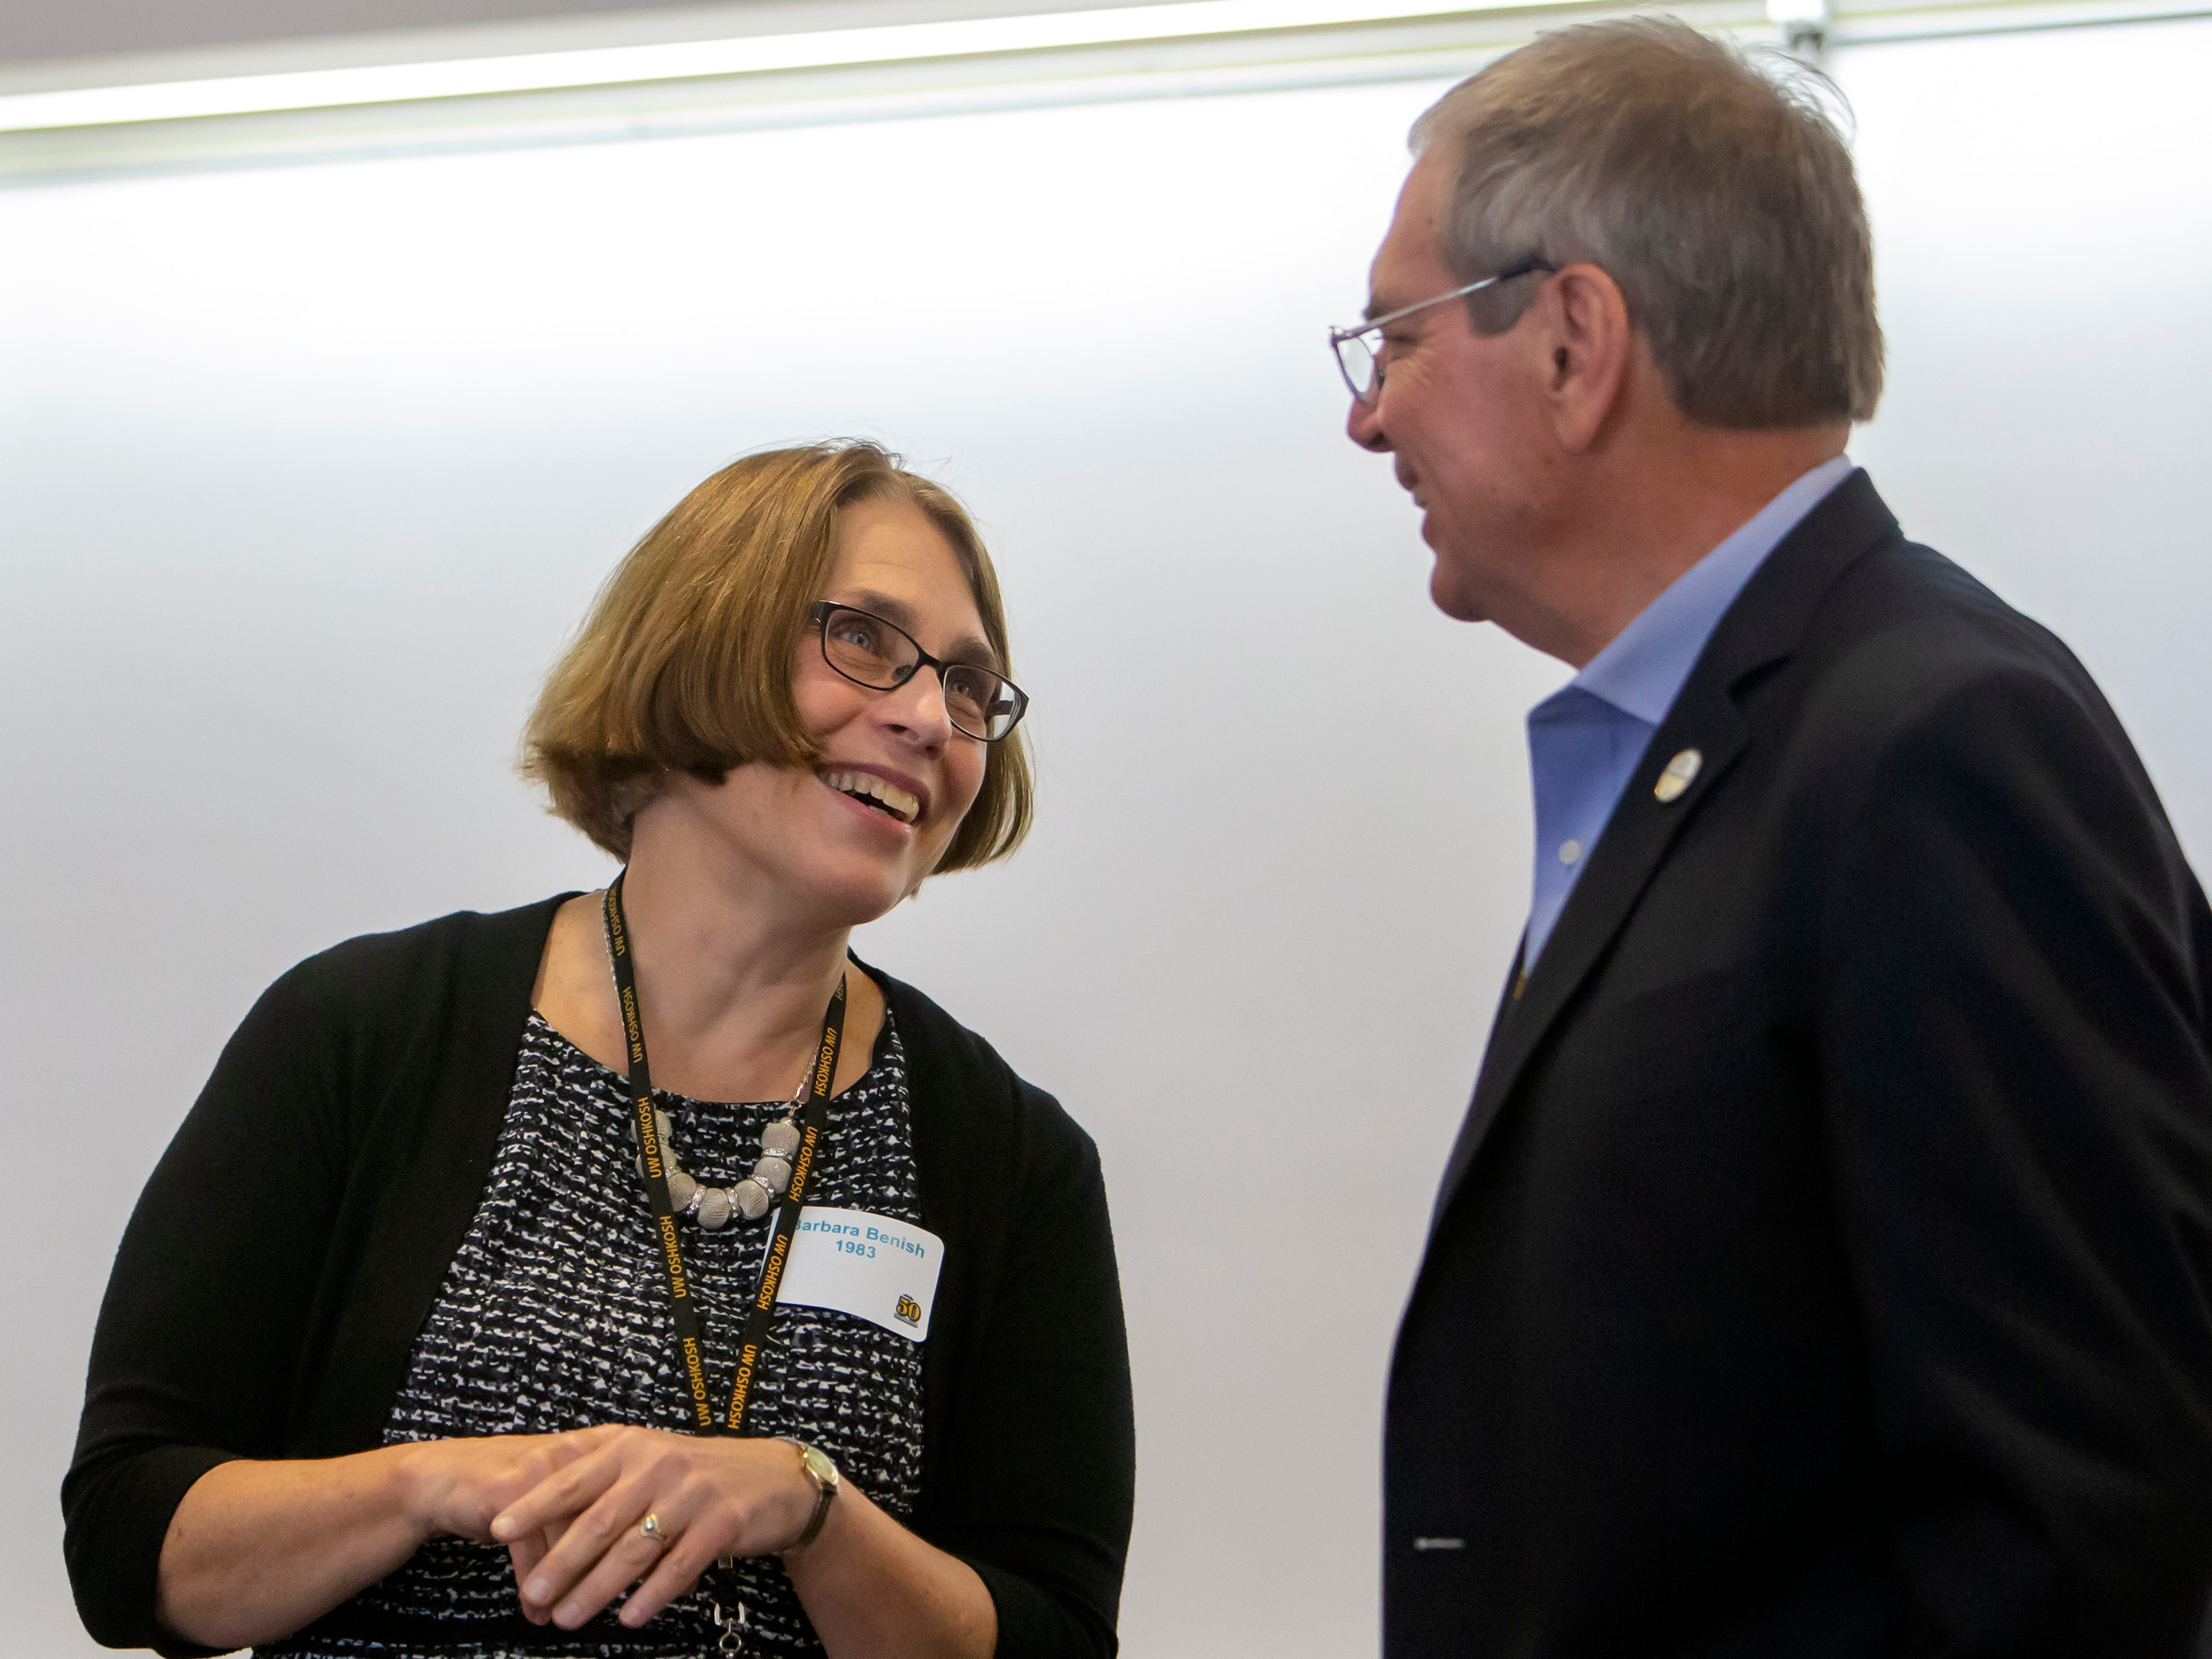 Barb Benish, UW-Oshkosh instructor and freelance writer, and Paul Anger, Retired Editor and Publisher, Detroit Free Press, converse before the panel discussion at the University of Wisconsin-Oshkosh Sage Hall as the school celebrates fifty-years in journalism on Friday, October 19, 2018.